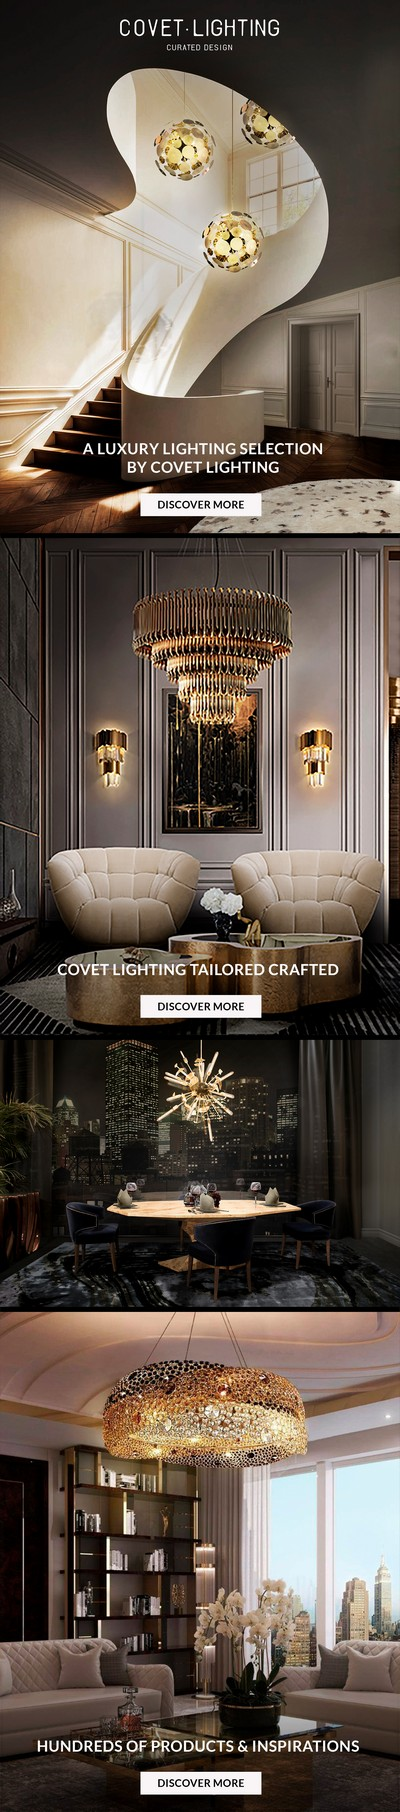 Side Banner Moodboard Covet Lighting